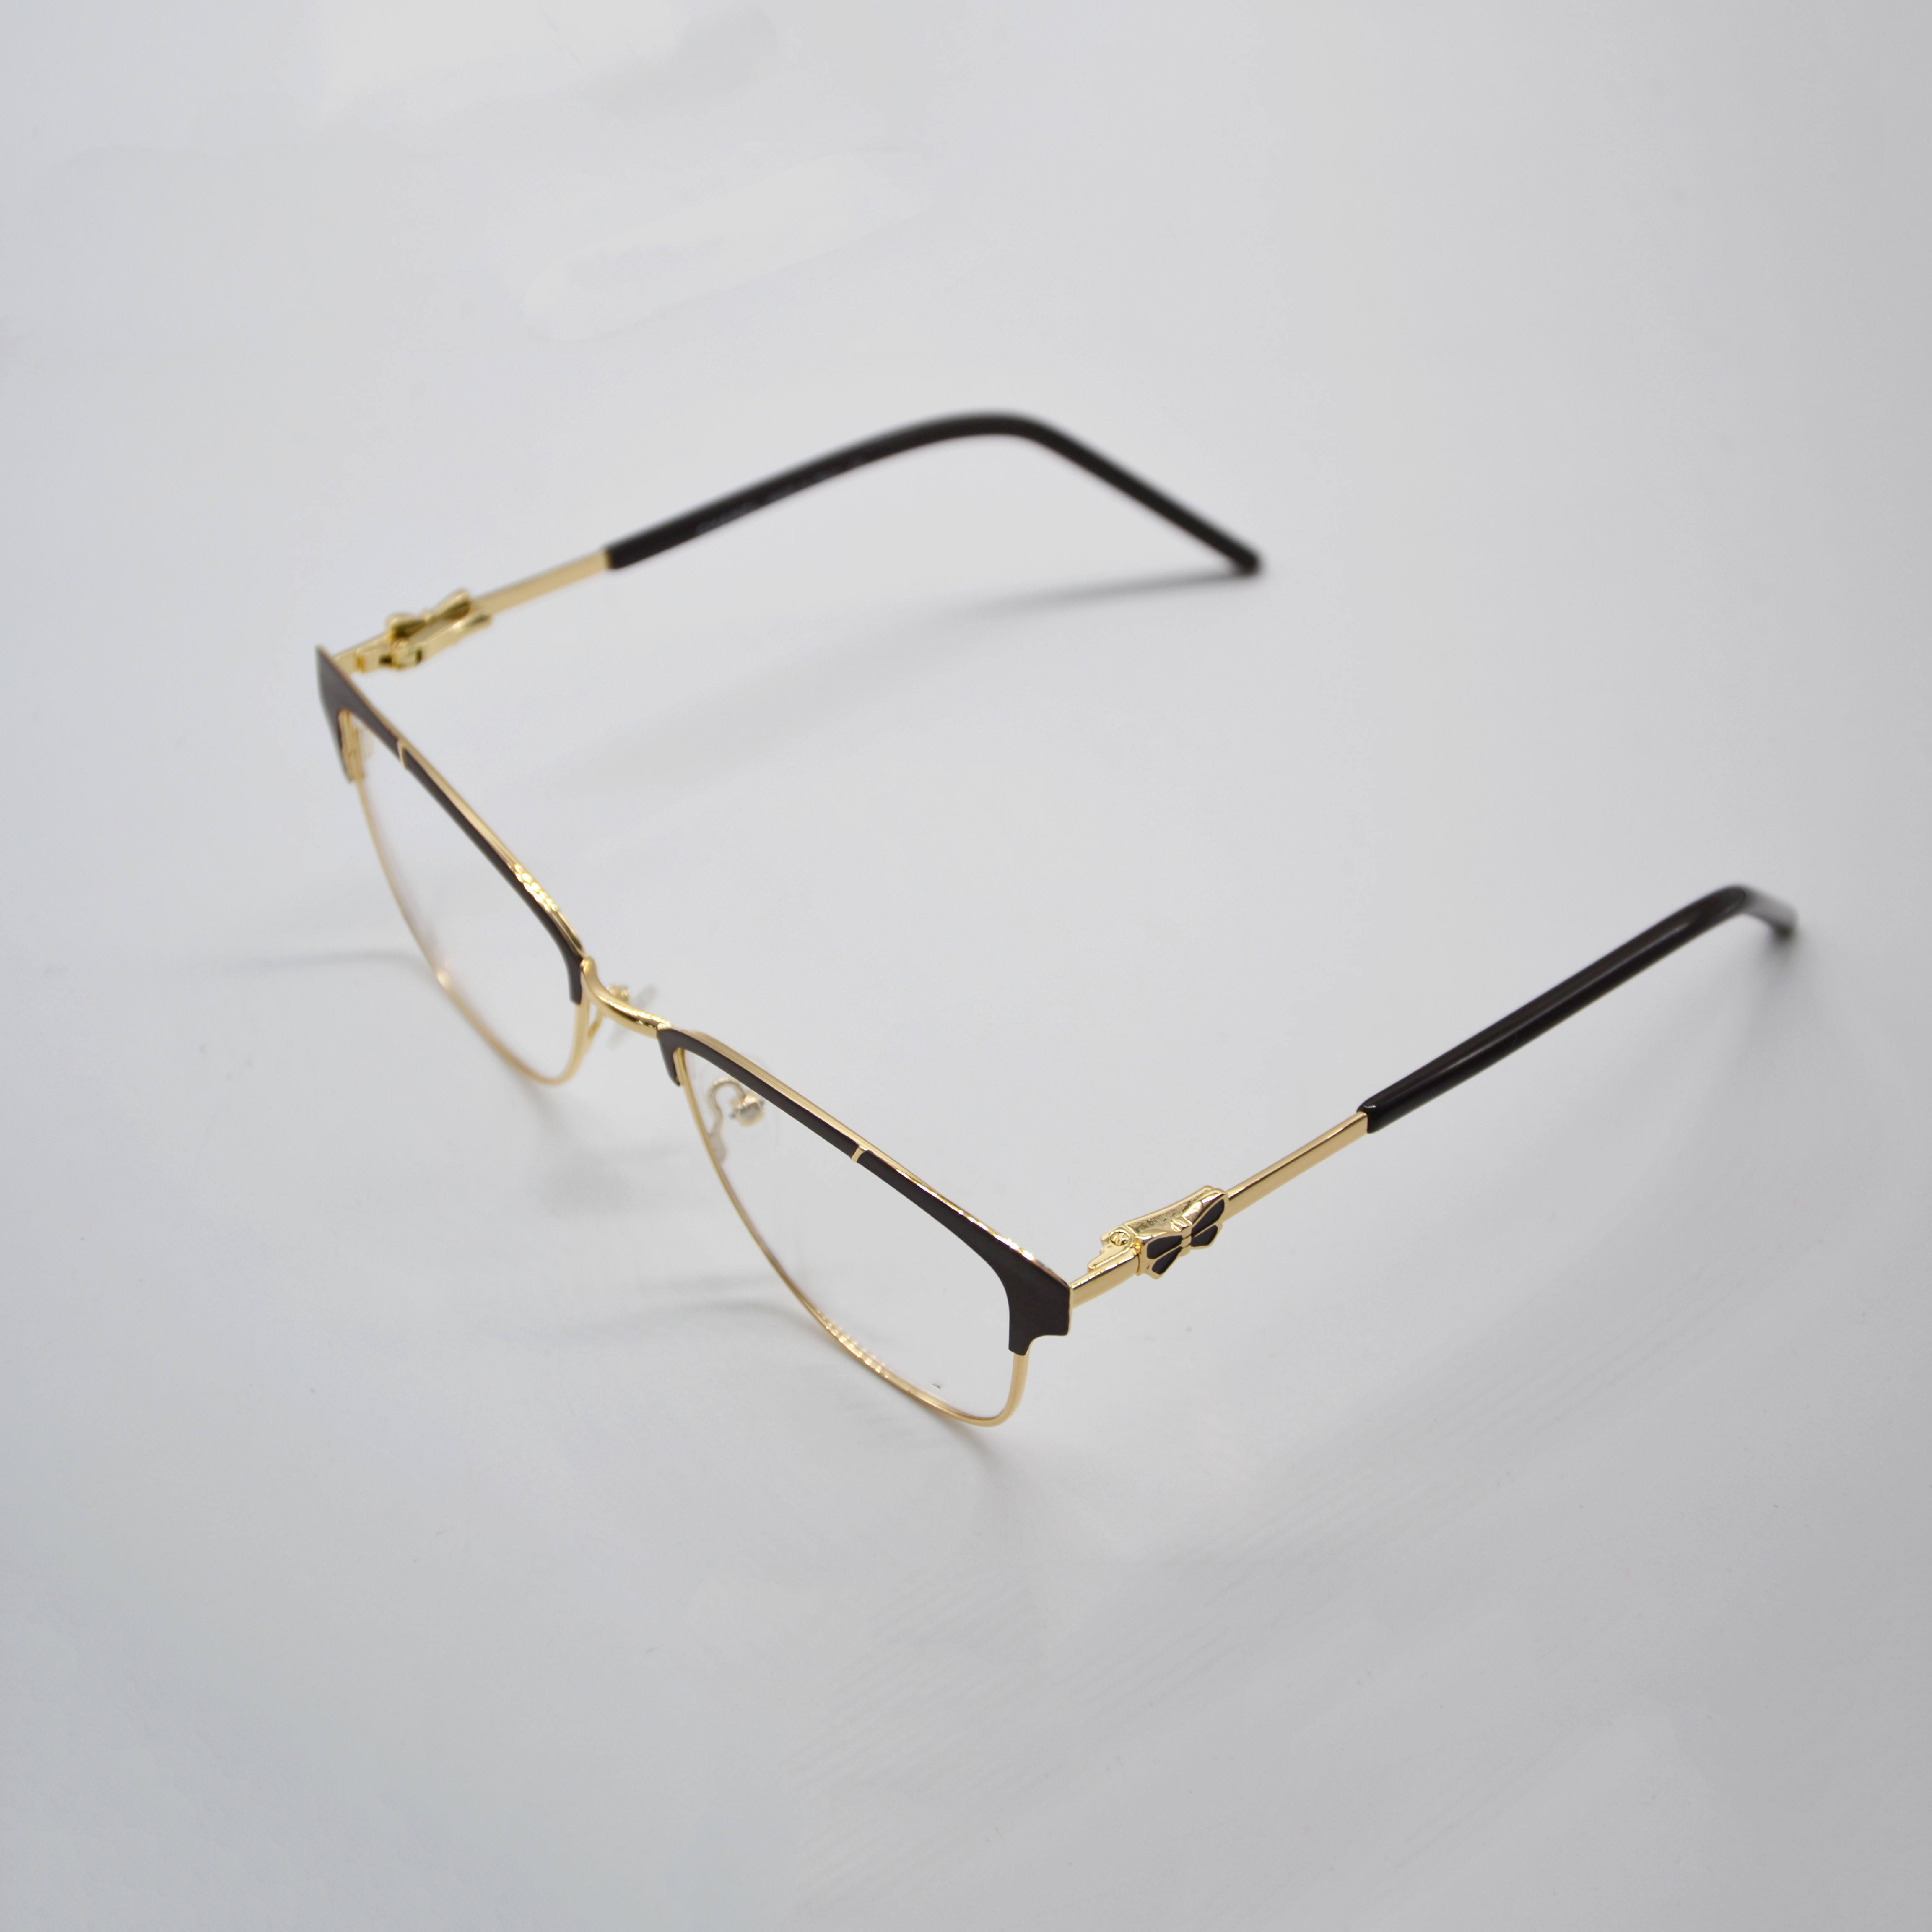 2020 eyeglass case frame custom attractive Italian design acetate metal fashion man and women optical exquisite glasses